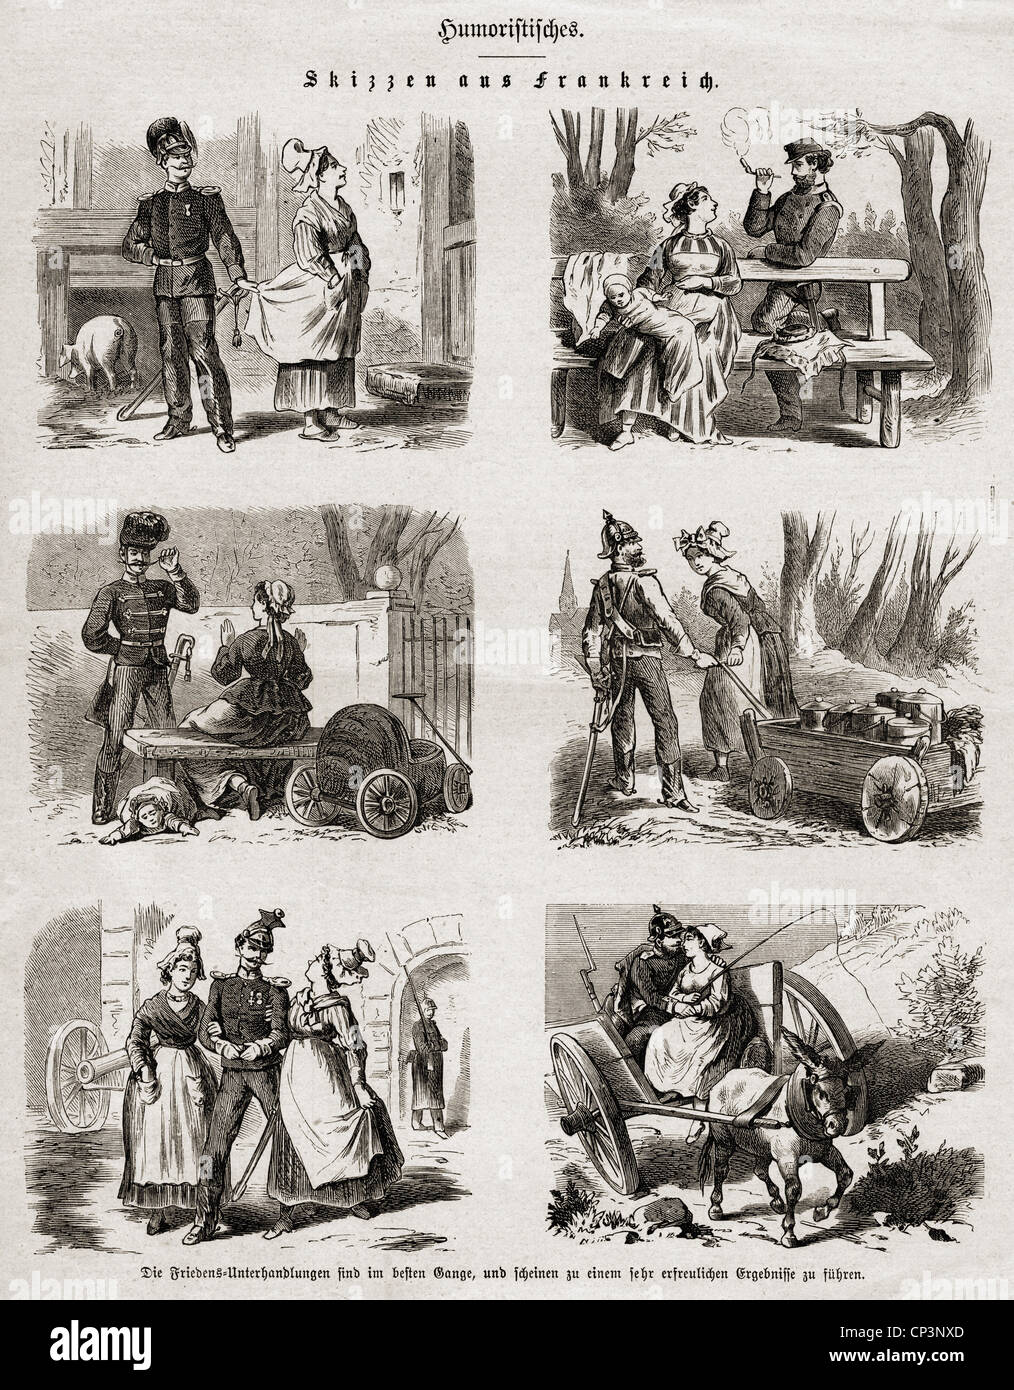 """events, Franco-Prussian War 1870 - 1871, press, """"Scetches from France"""", wood engraving, 1871, Additional-Rights-Clearences-Not Available Stock Photo"""